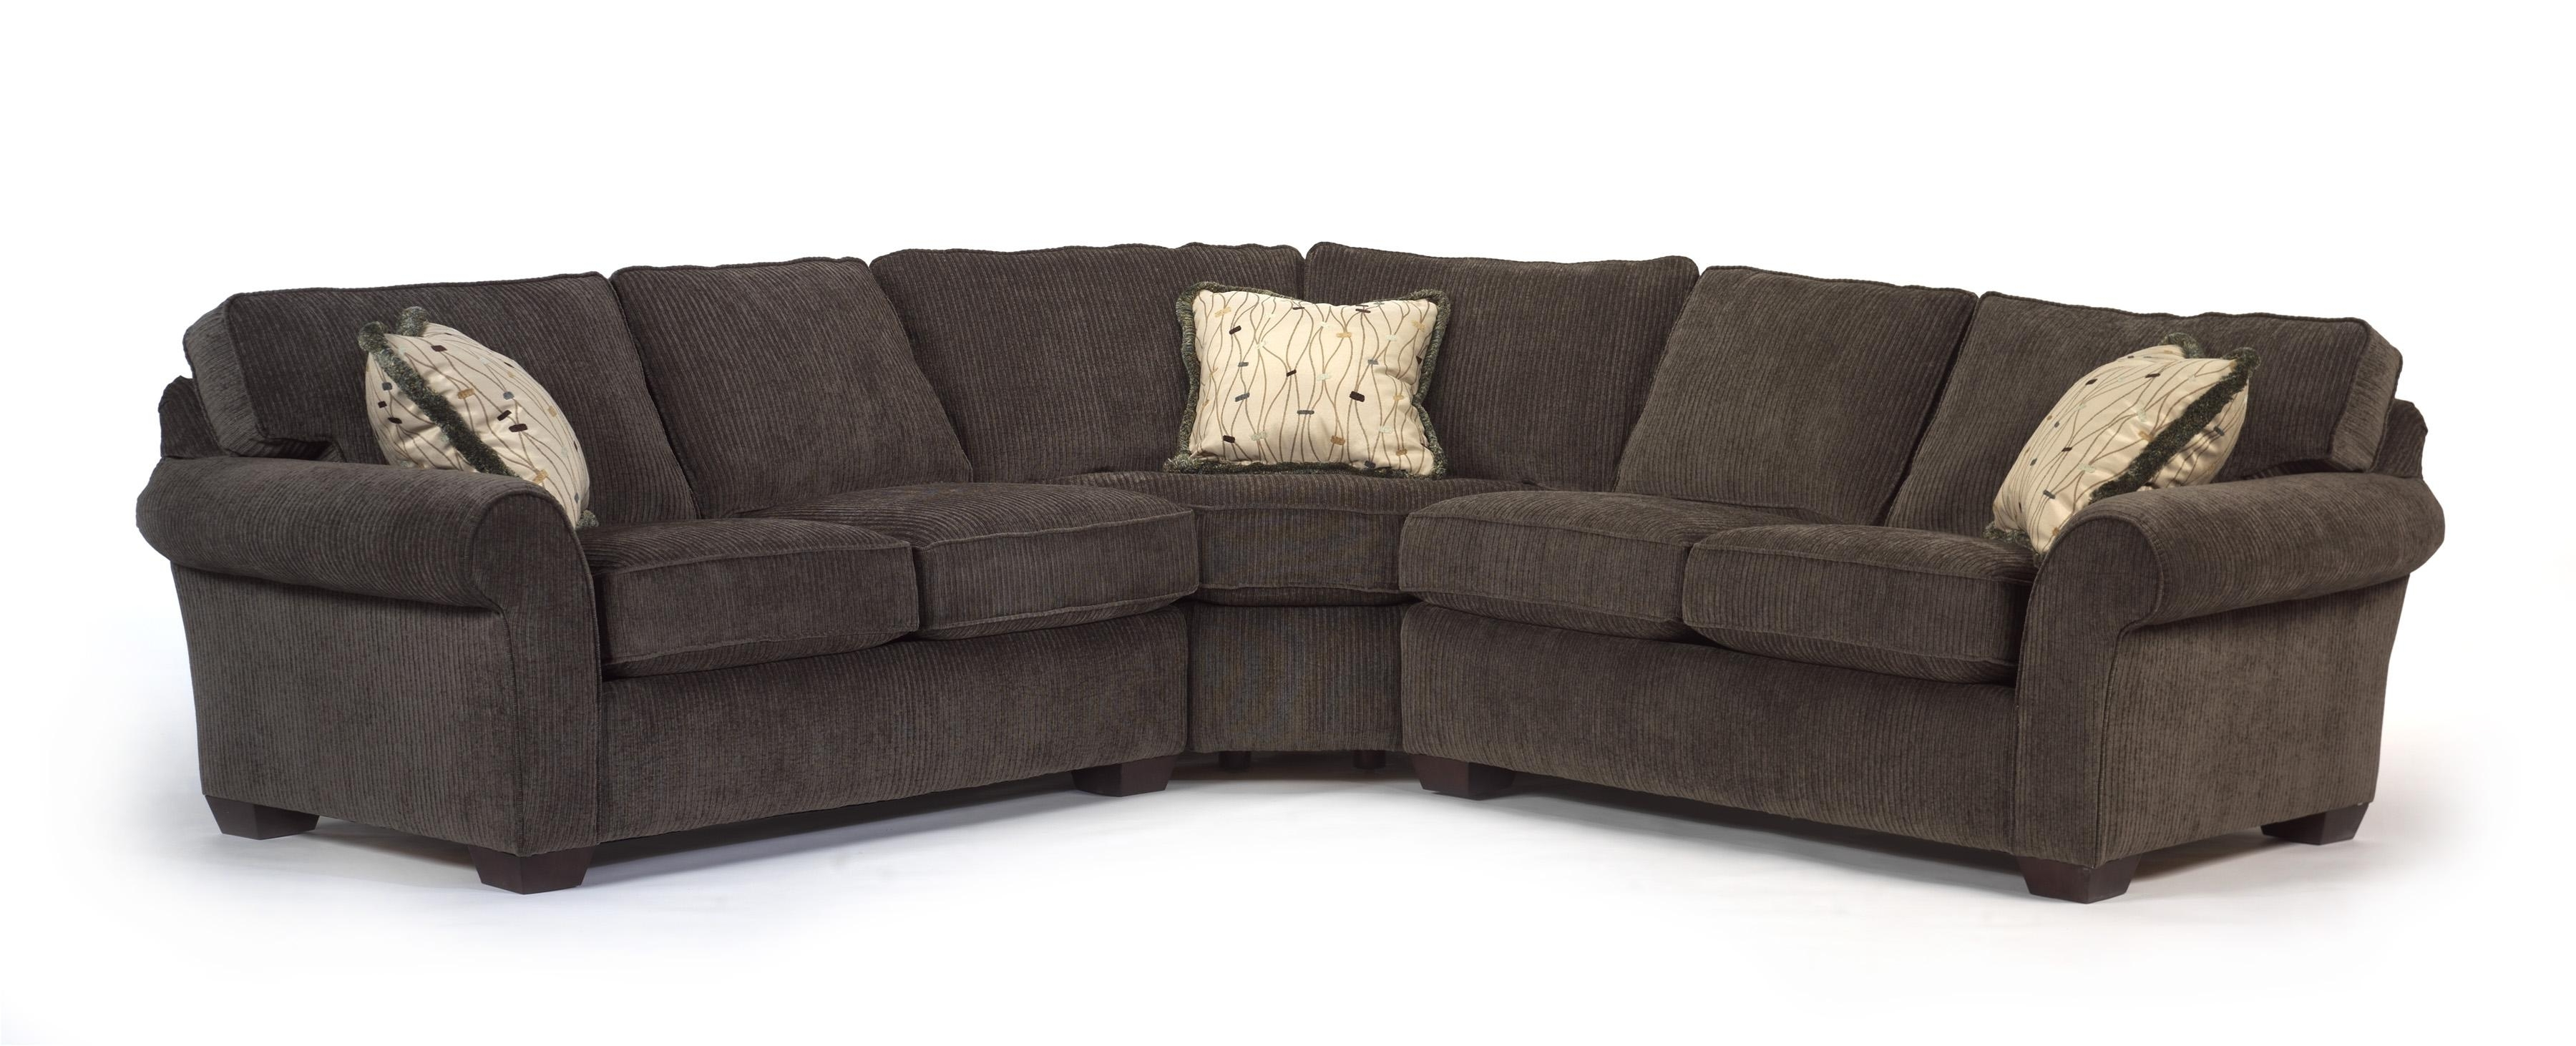 Flexsteel Vail Corner Sectional Sofa – Ahfa – Sofa Sectional Within Well Liked Kansas City Sectional Sofas (View 13 of 20)